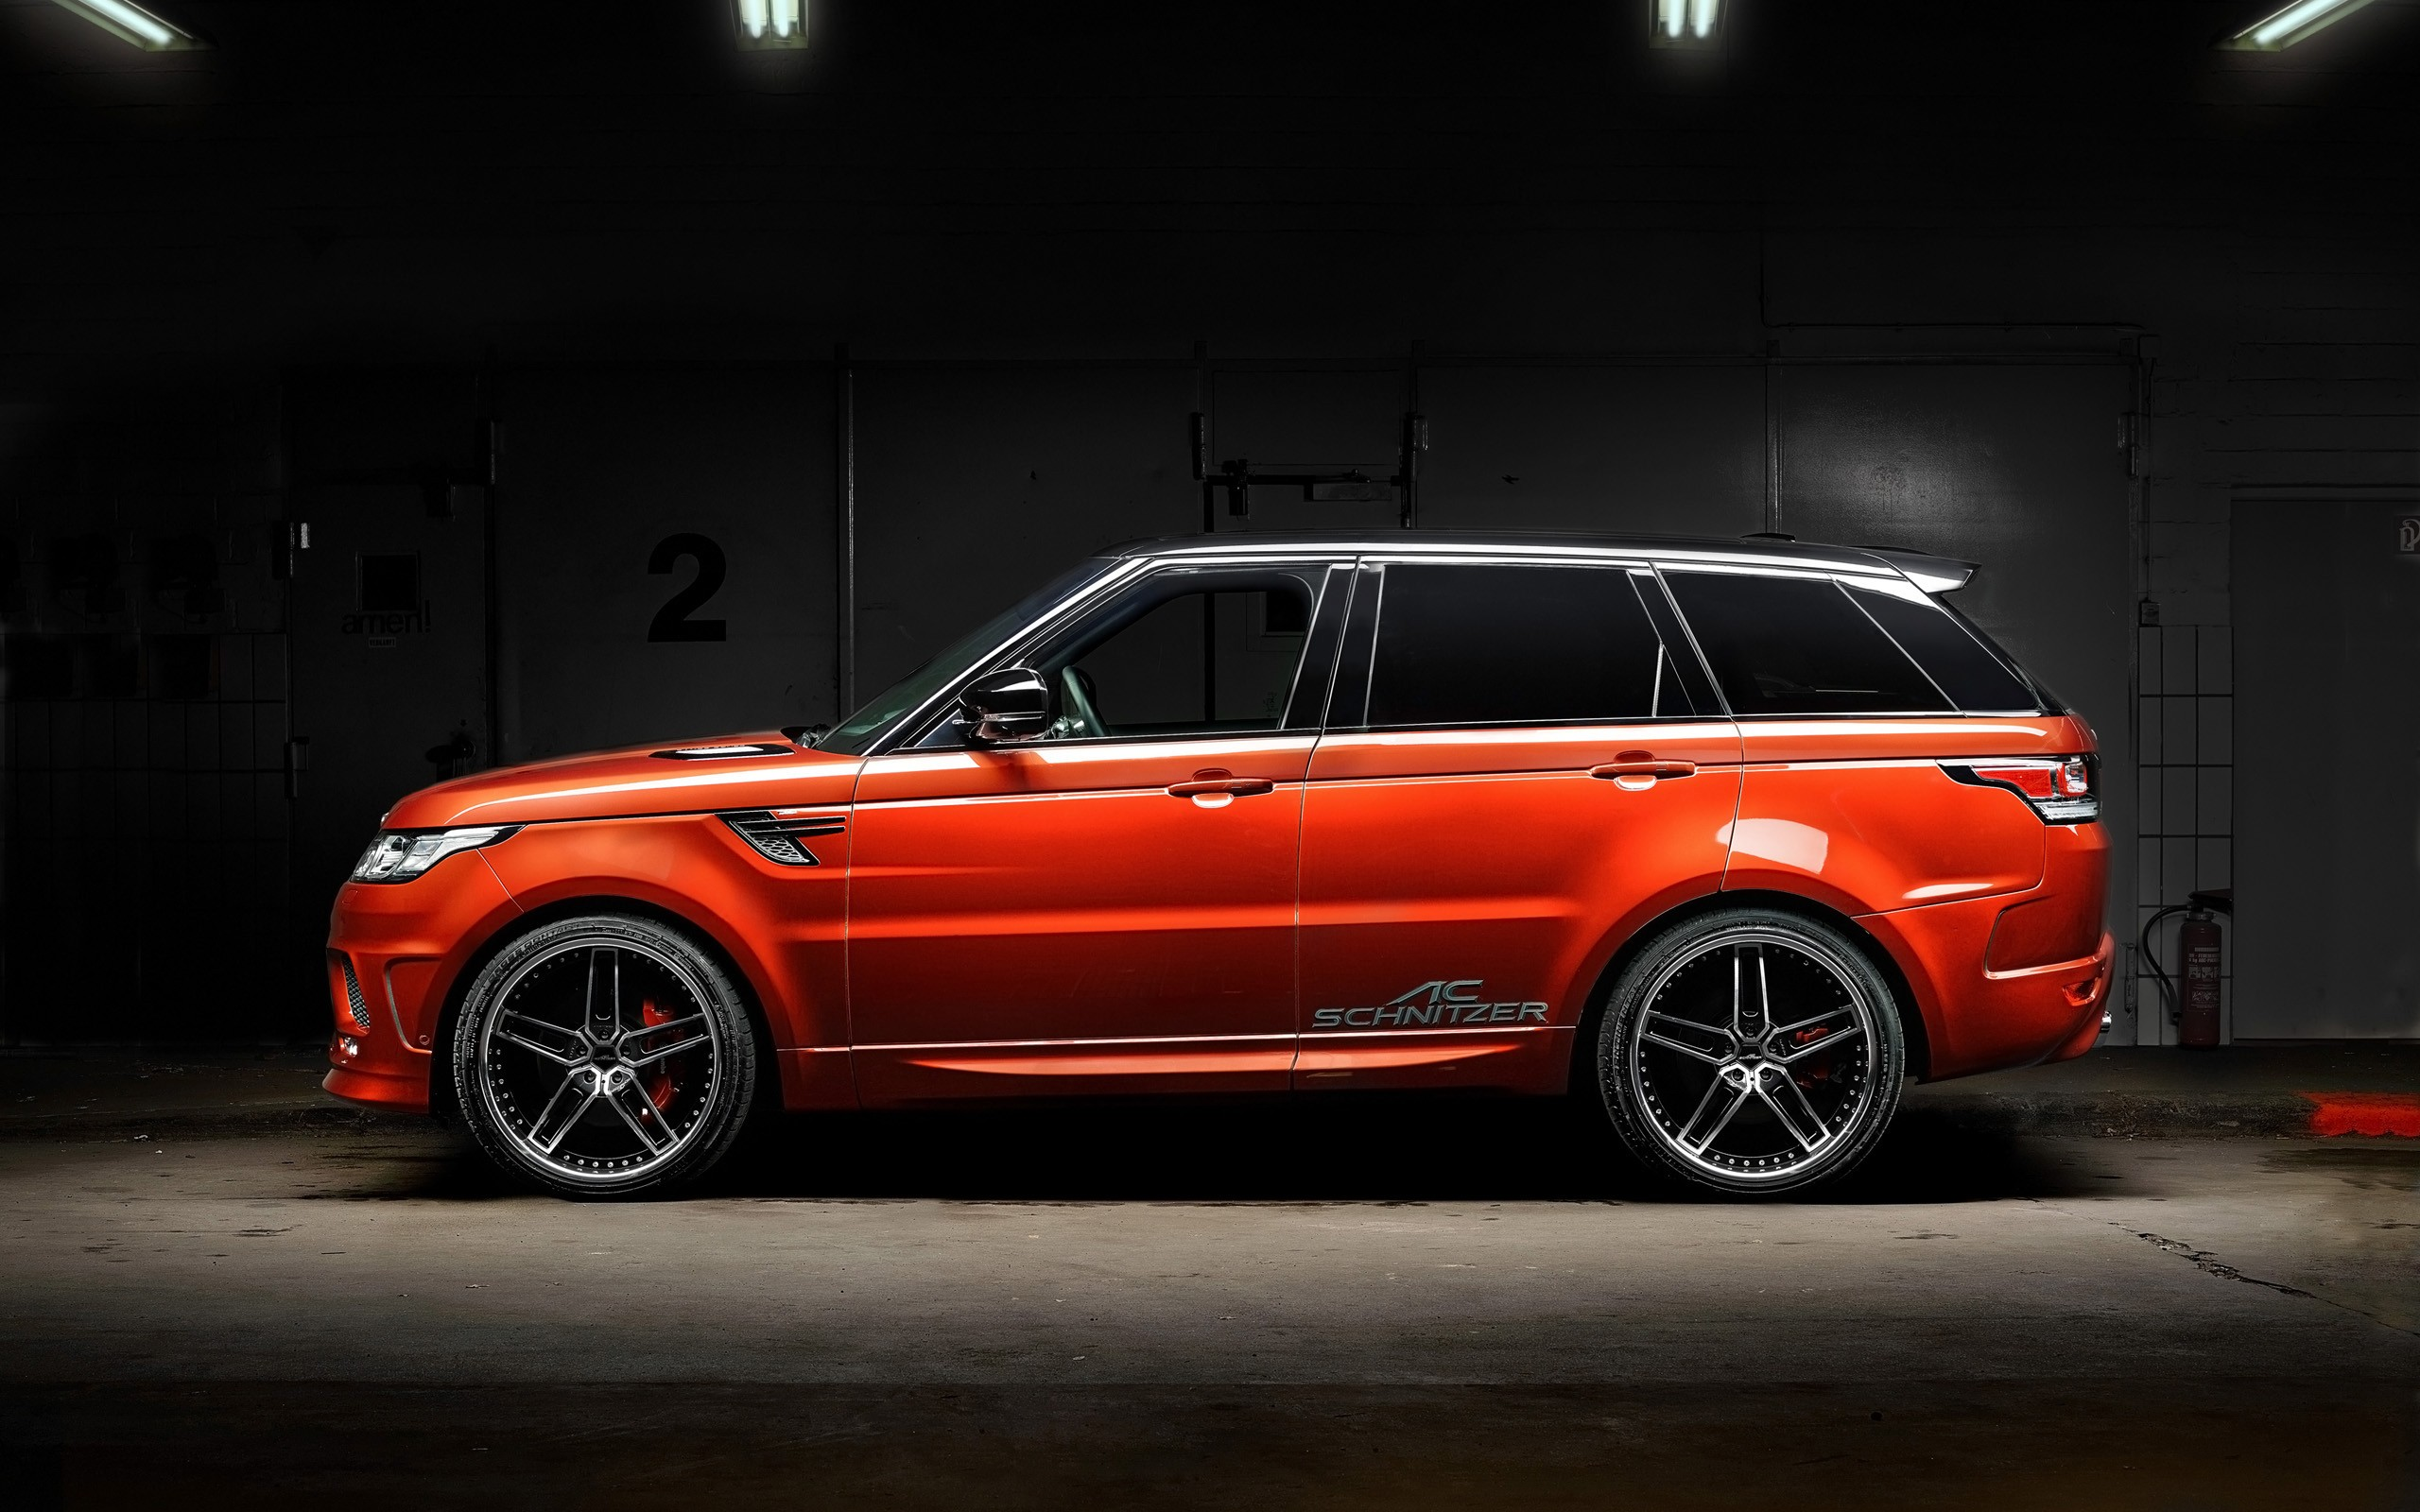 Range Rover Sport Iphone Wallpaper: 2014 Range Rover Sport By AC Schnitzer Wallpaper